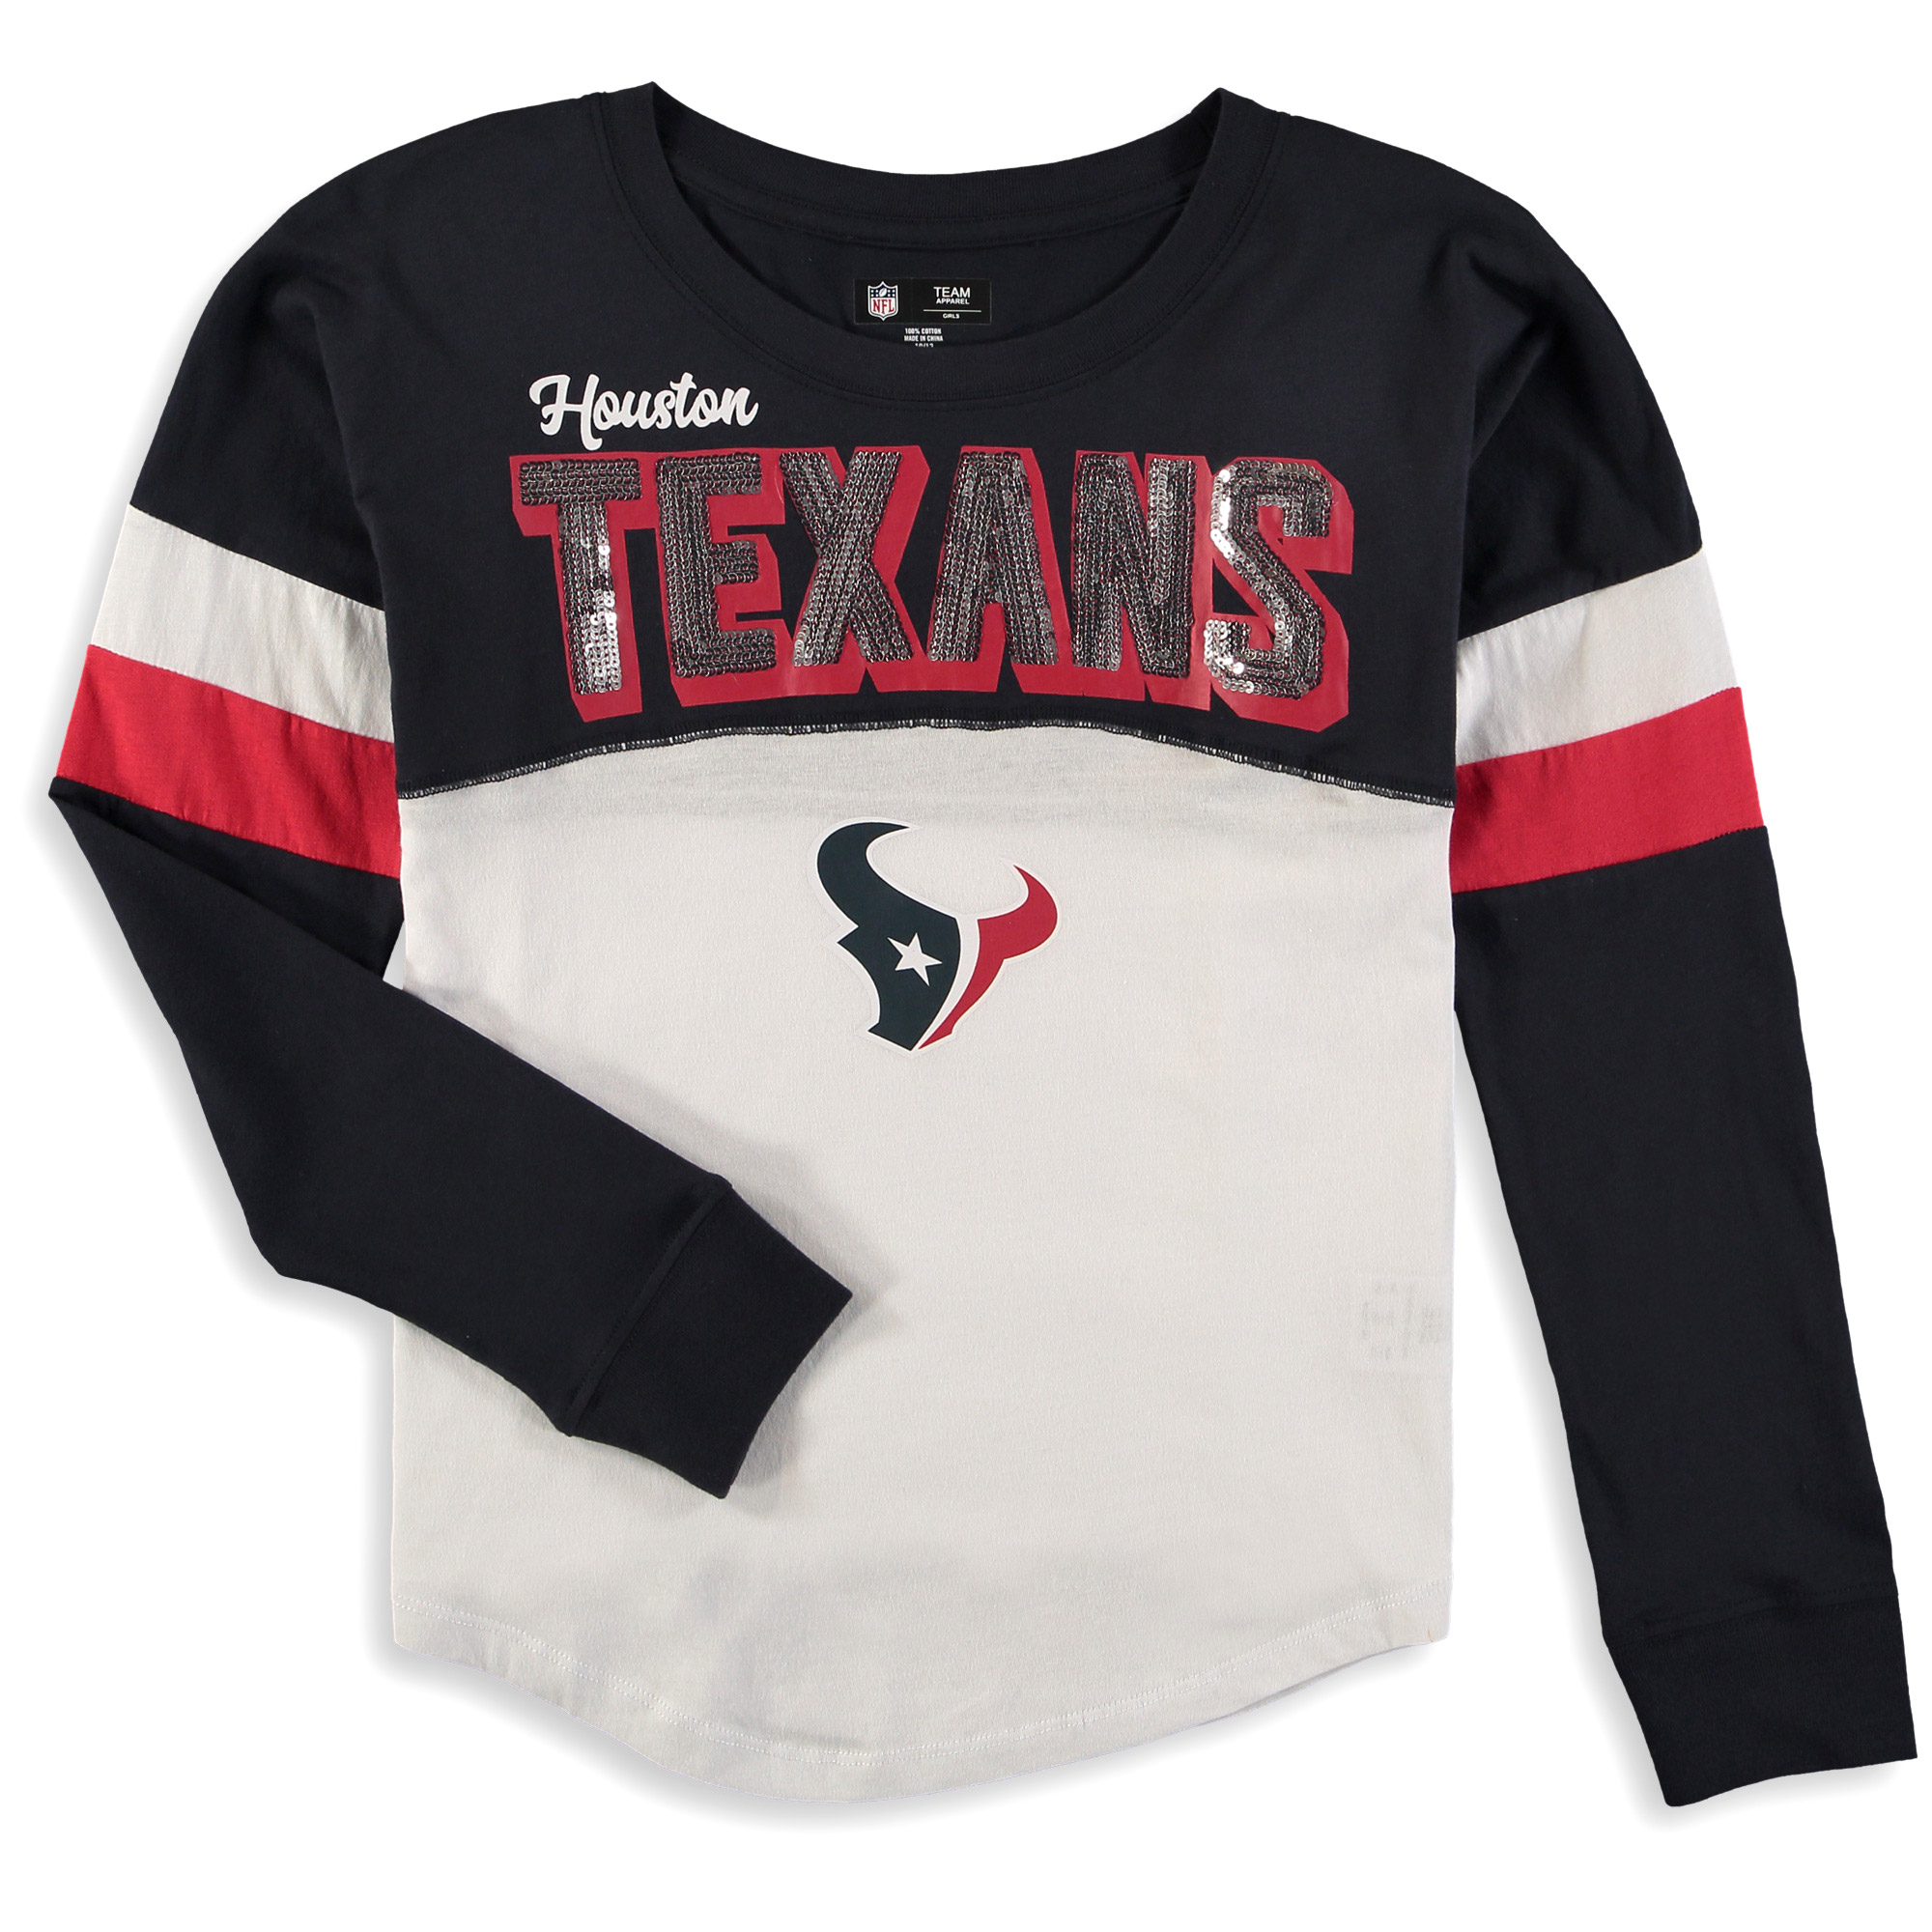 Houston Texans New Era Girls Youth Baby Jersey Long Sleeve T-Shirt - White/Navy